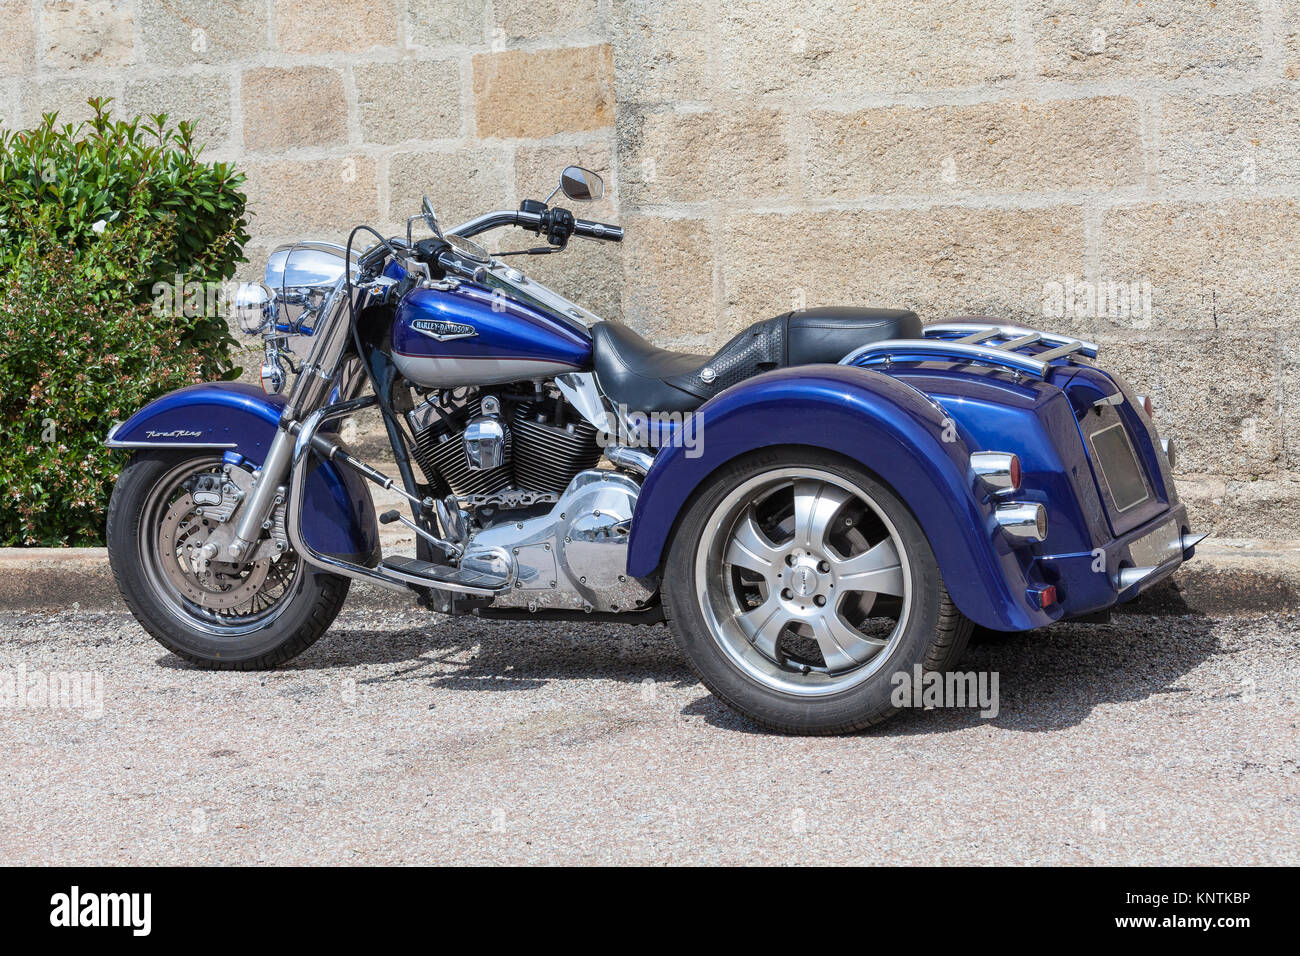 harley davidson trike photos harley davidson trike images alamy. Black Bedroom Furniture Sets. Home Design Ideas